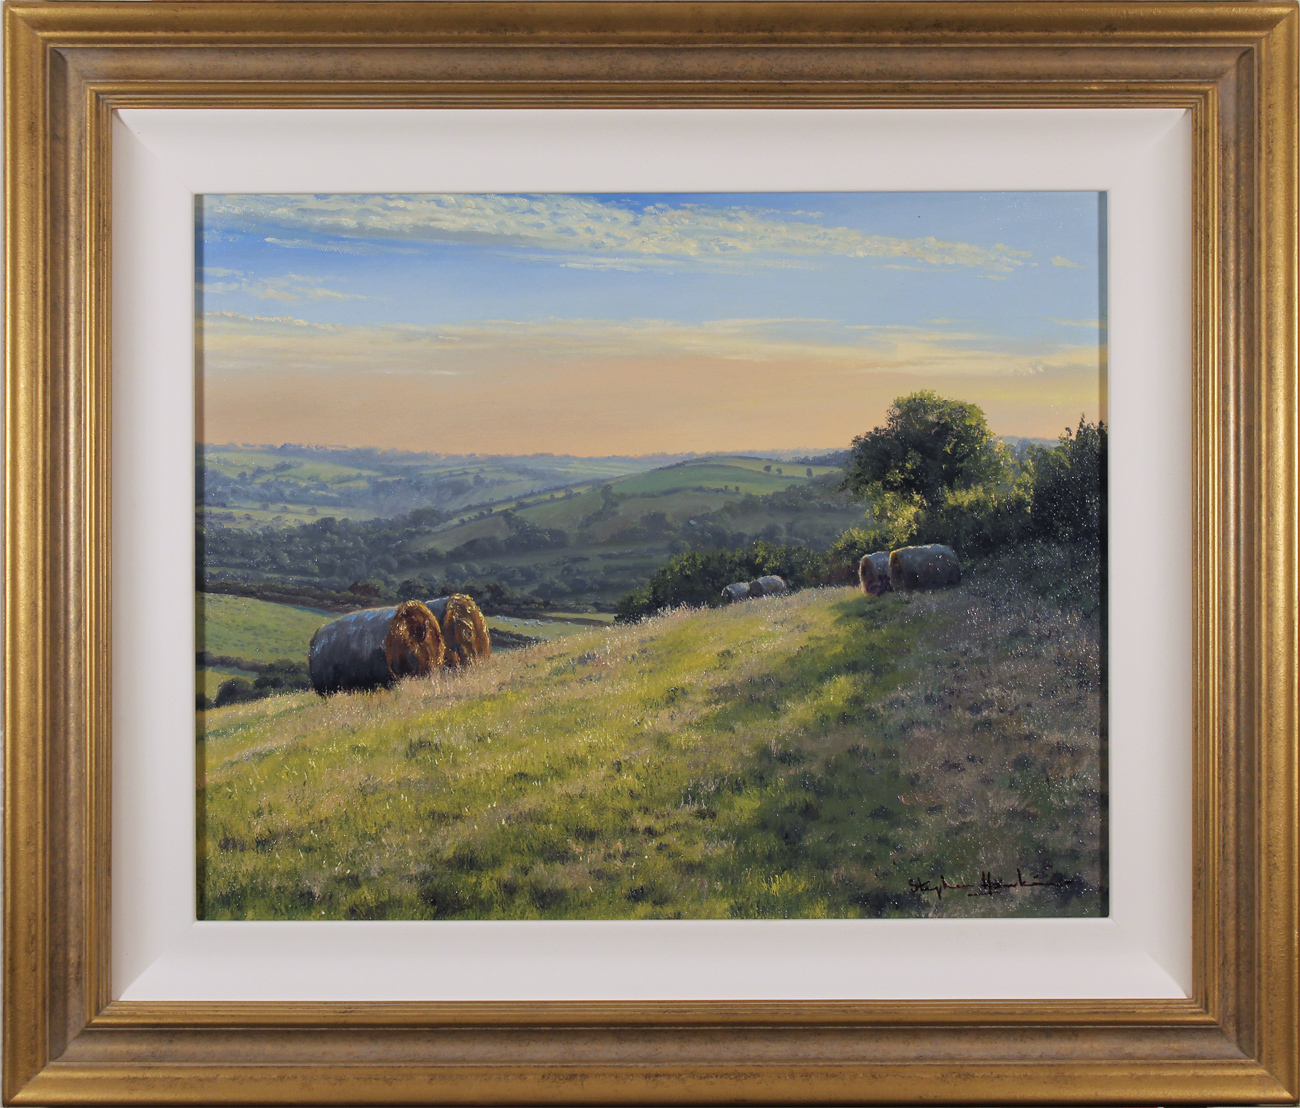 Stephen Hawkins, Original oil painting on canvas, Hay Bales, Yorkshire Wolds. Click to enlarge